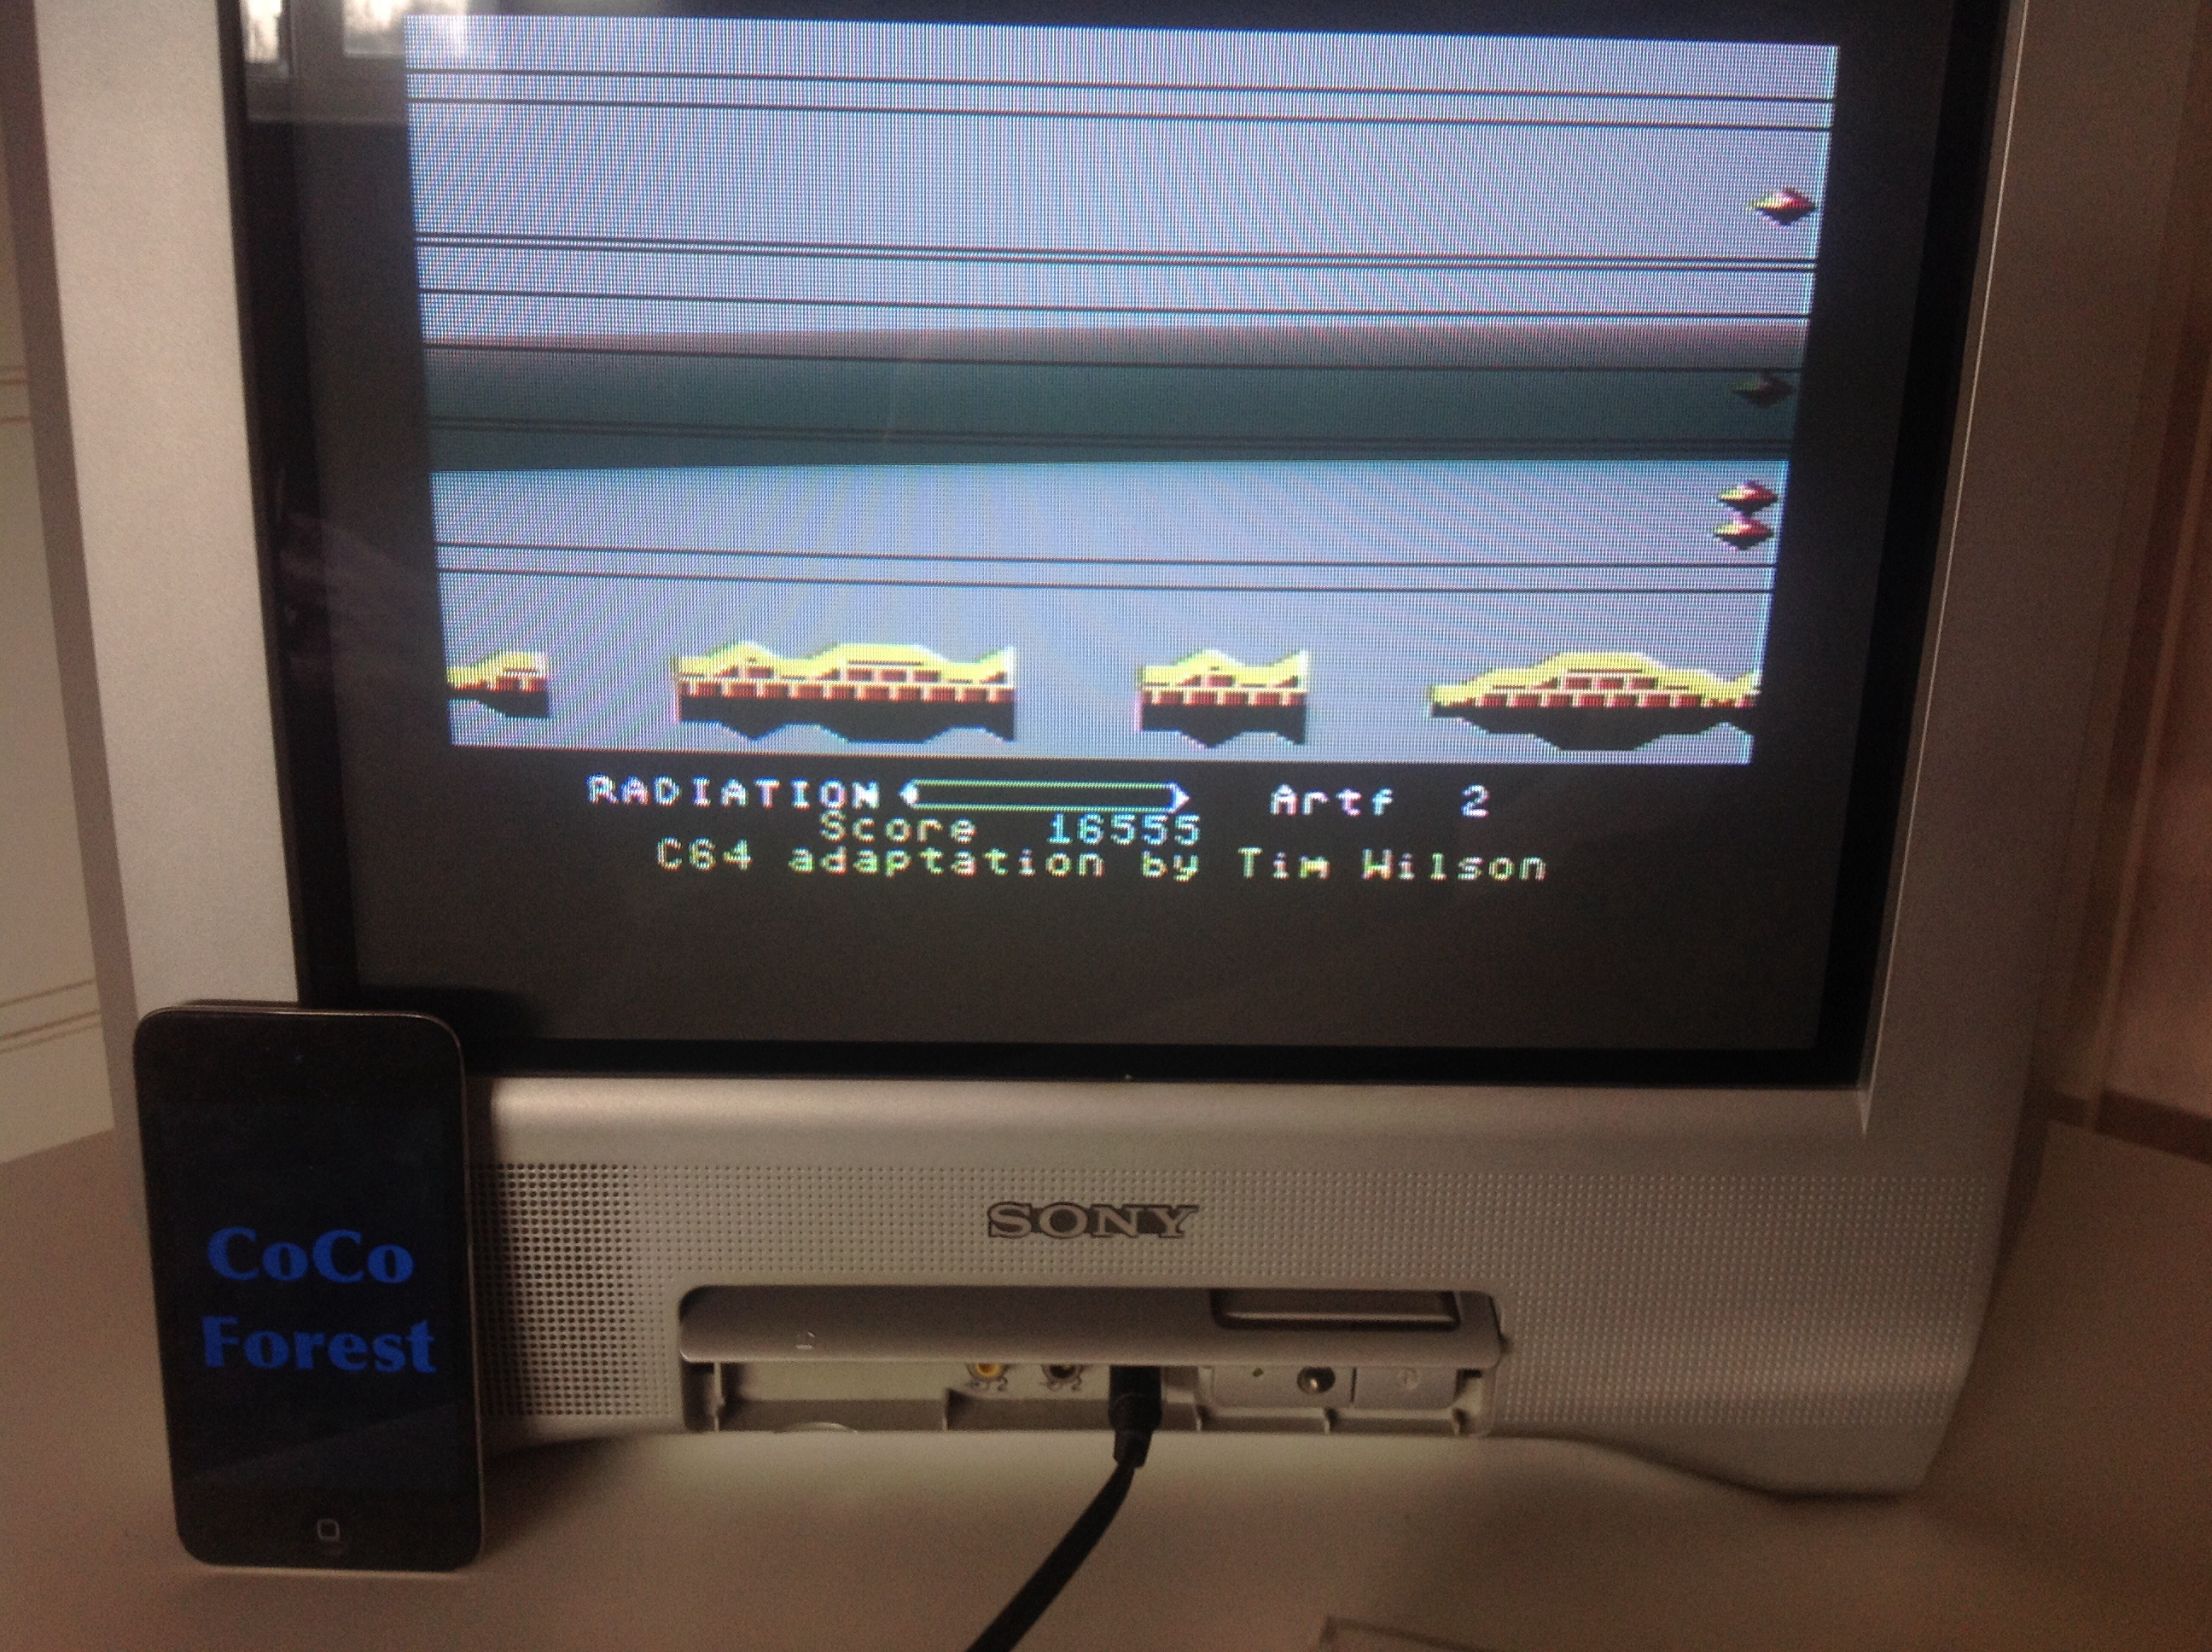 CoCoForest: Pastfinder (Commodore 64) 16,555 points on 2015-03-13 08:08:10